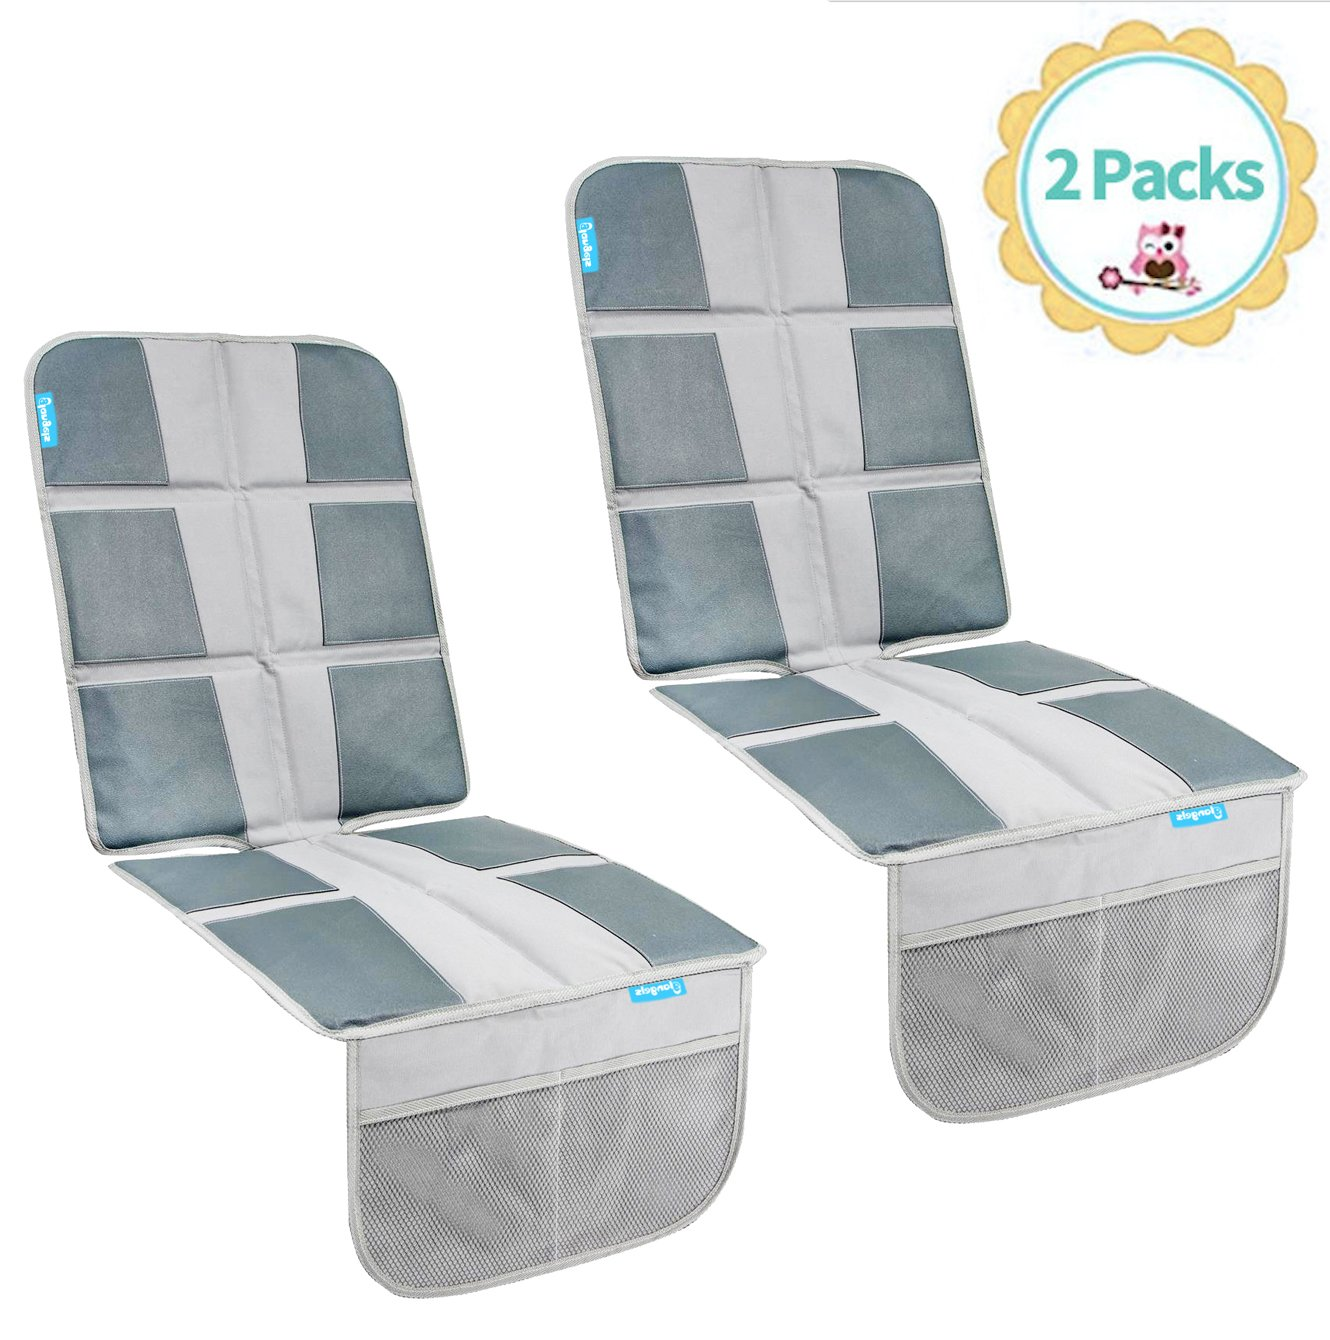 Child Car Seat Protector- Enhanced Padded Booster Seat Cover for Vehicles – Waterproof Seat Protectant for Baby or Toddler – Extra Large Storage Pocket – Prevents Dirt and Damage (Grey 2 PCs)) Glangels